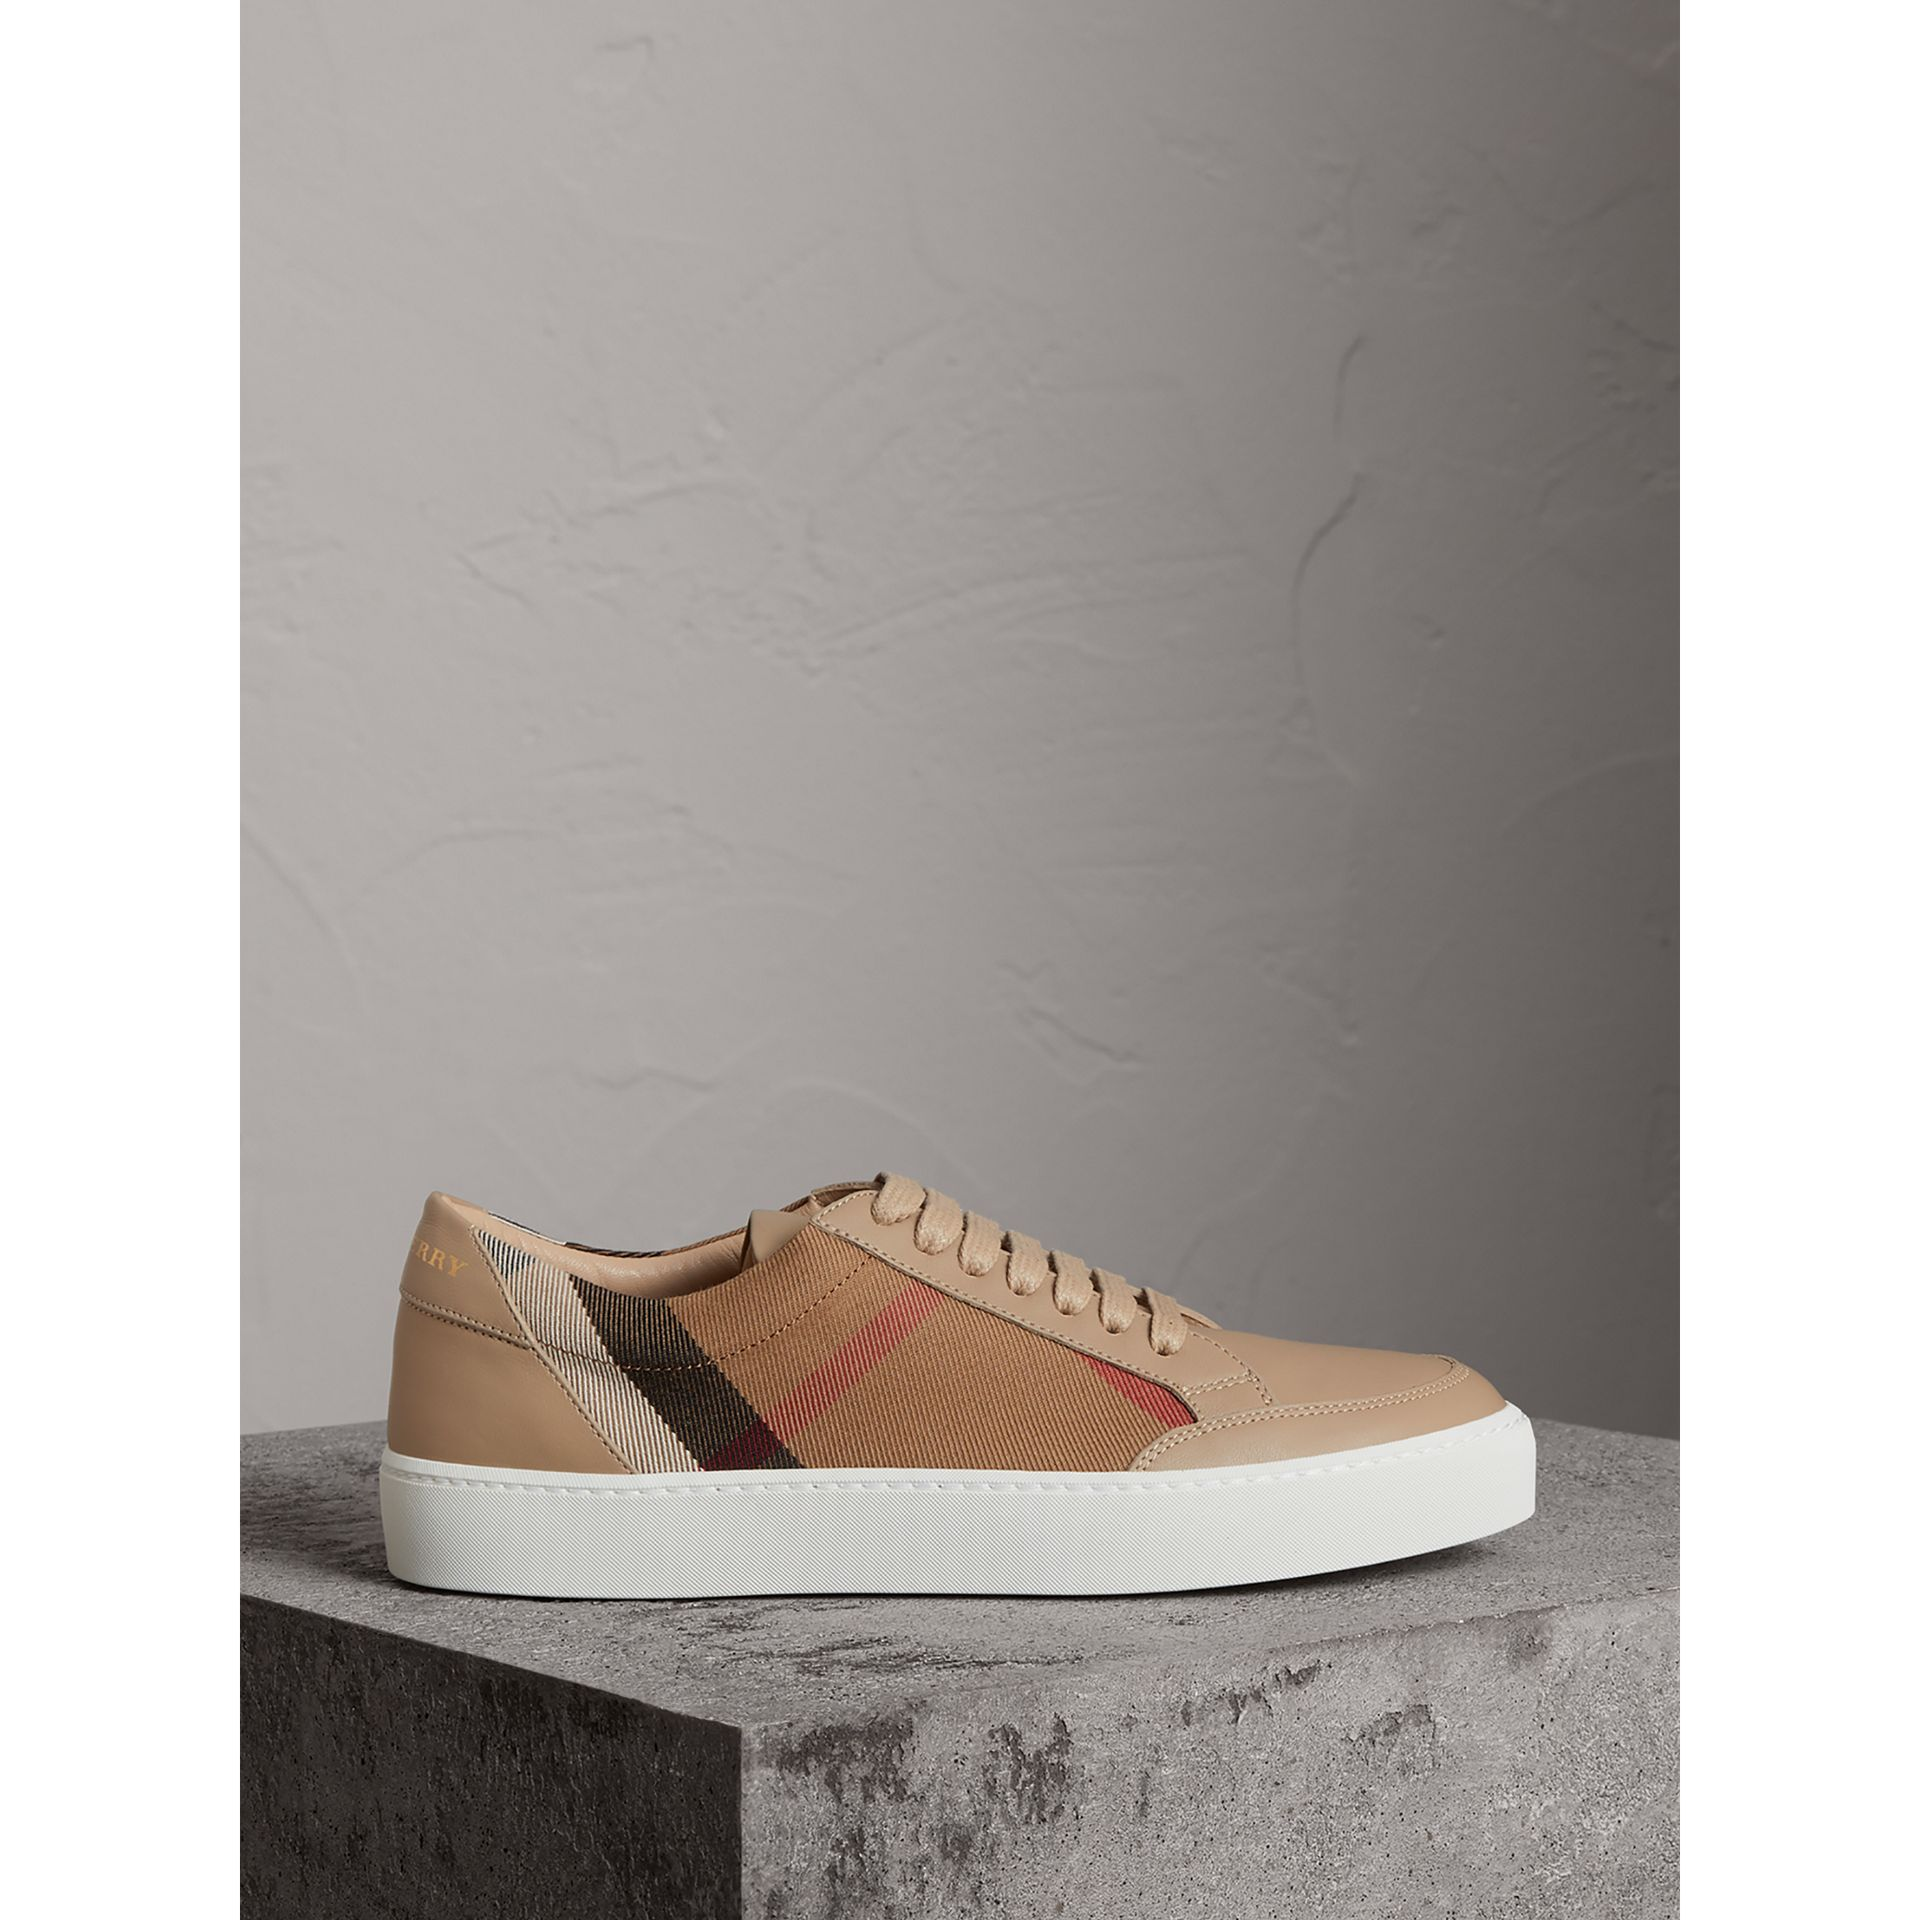 Check Detail Leather Sneakers in House Check/ Nude - Women | Burberry Canada - gallery image 4